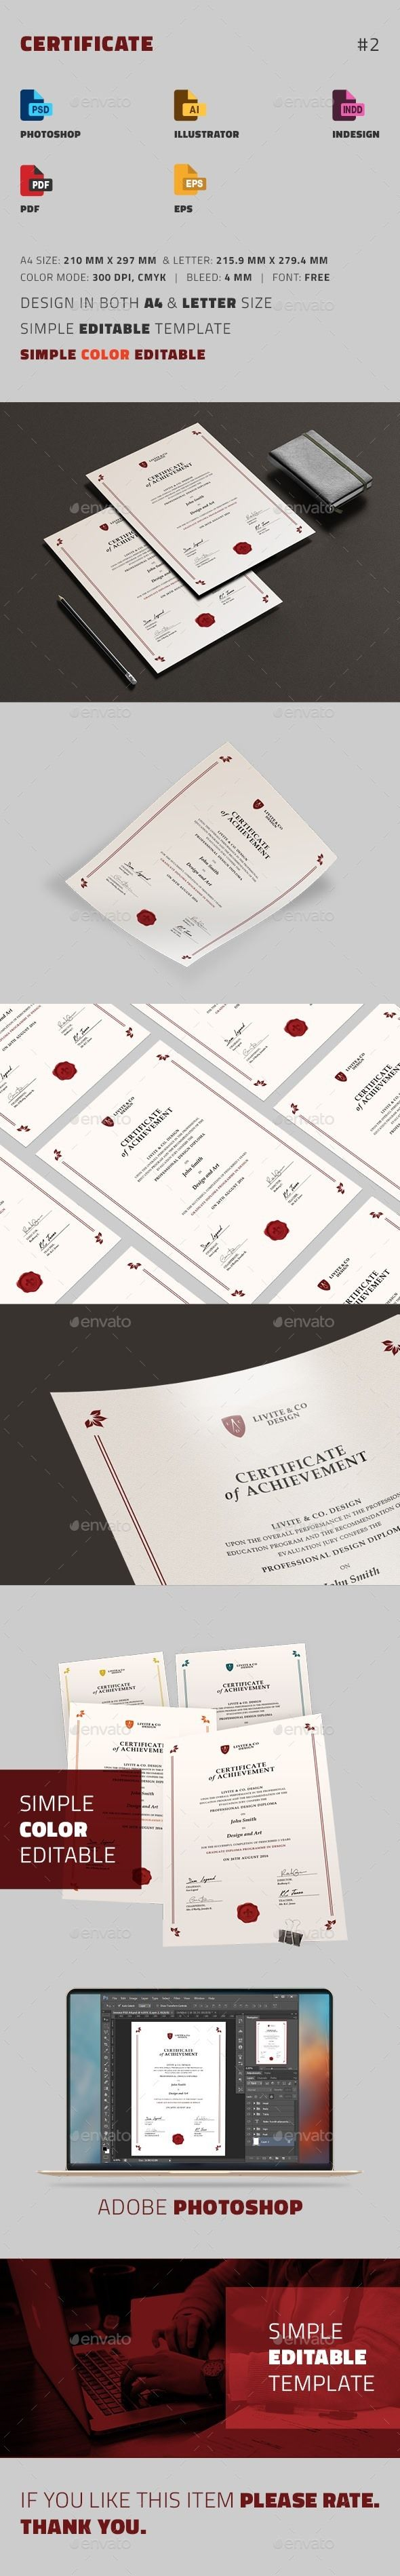 156 best certificate template design images on pinterest certificate yelopaper Choice Image